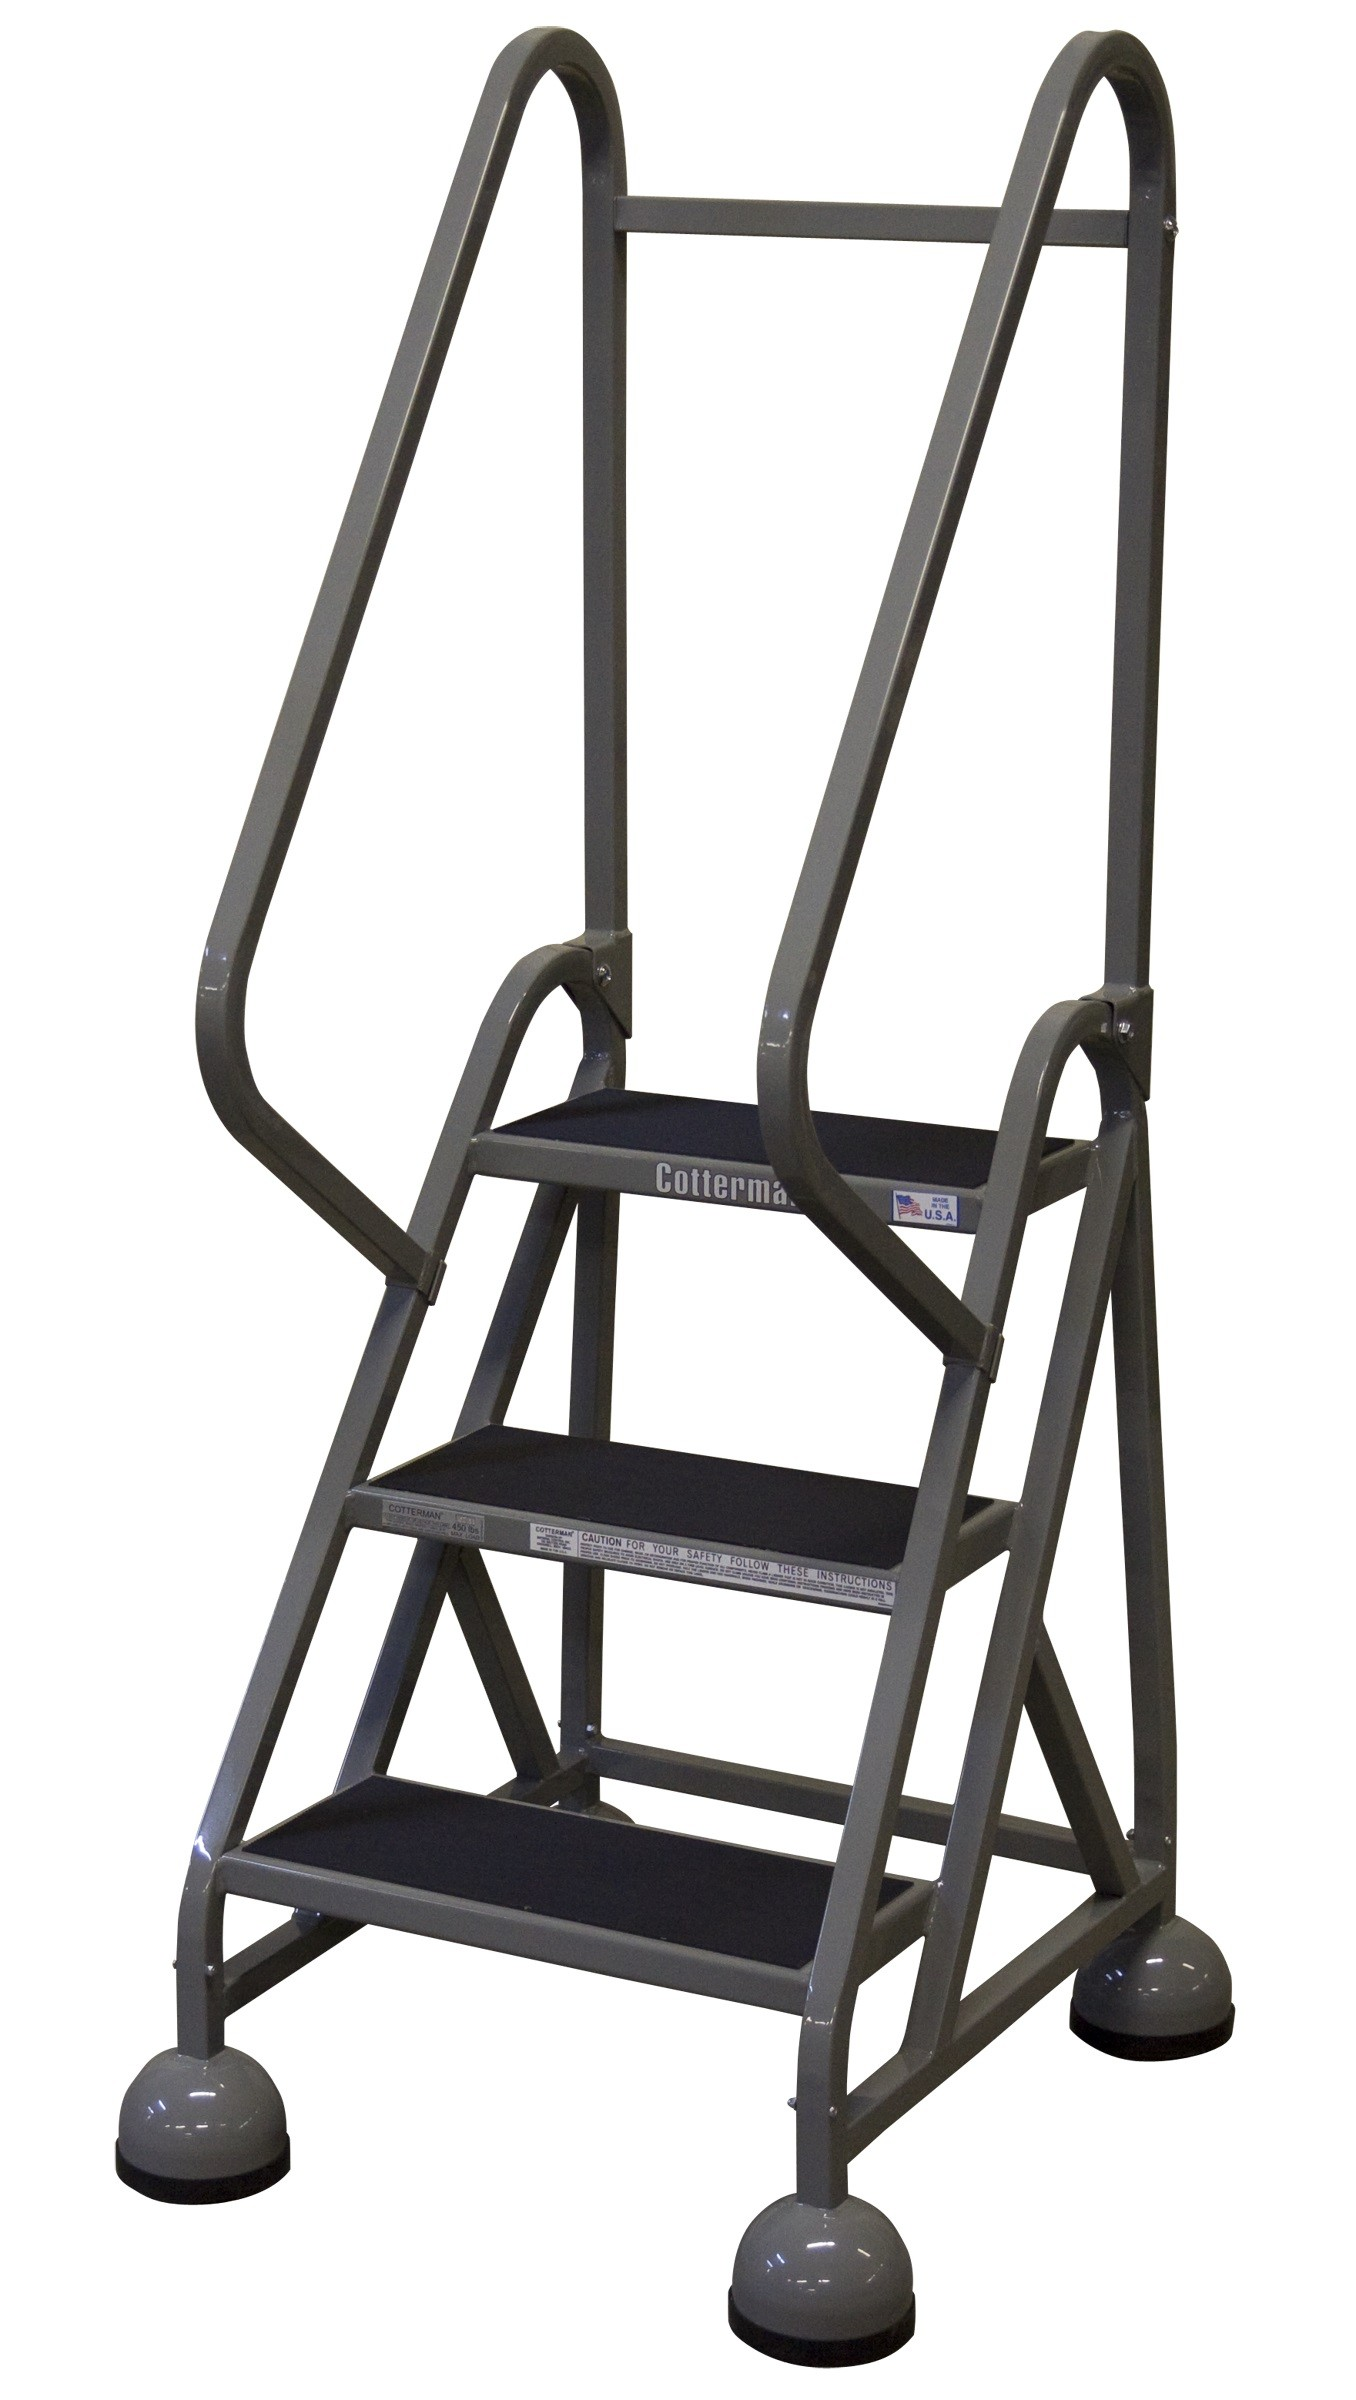 Calico Ladders Cotterman Am 301 Aluminum Alumastep